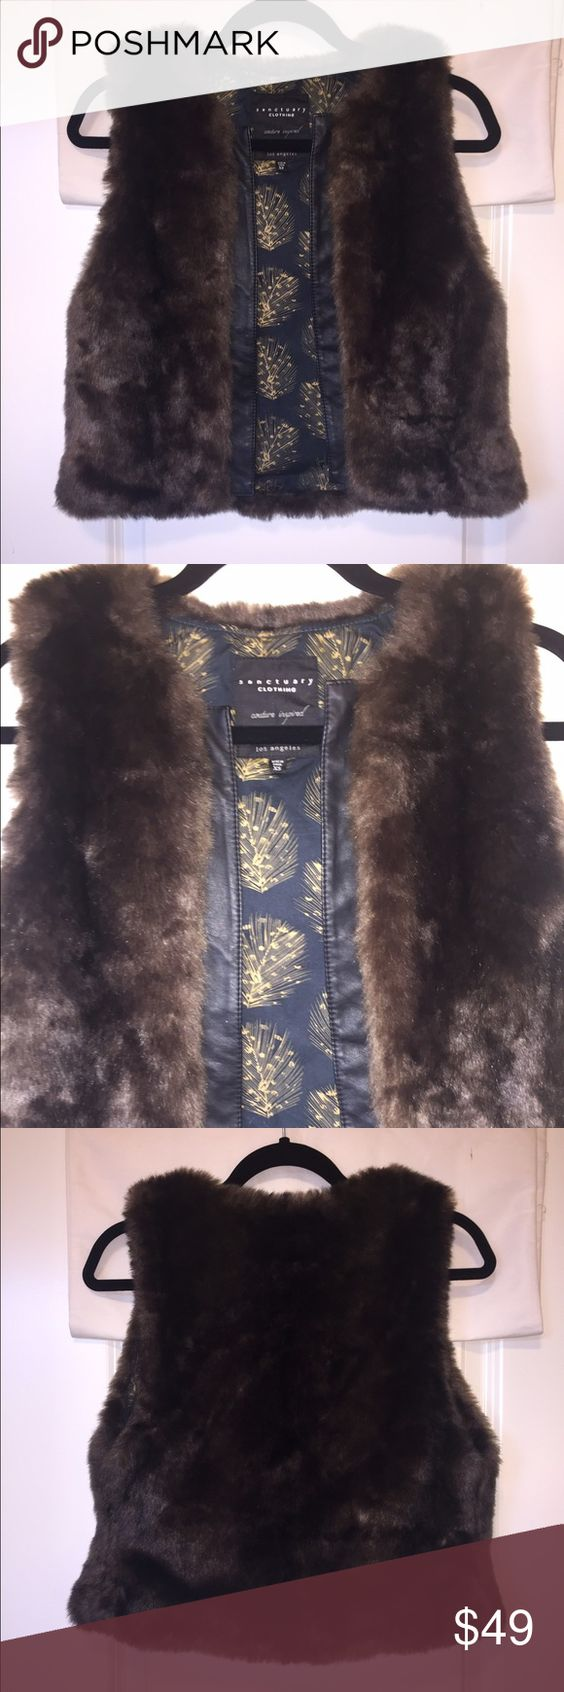 "Sanctuary Faux Fur Vest Beautiful Sanctuary faux fur vest with leather trim. Like new. Only worn once. Pretty lining. 74% acrylic/26% polyester. 20"" length. Size XS. Sanctuary Jackets & Coats Vests"